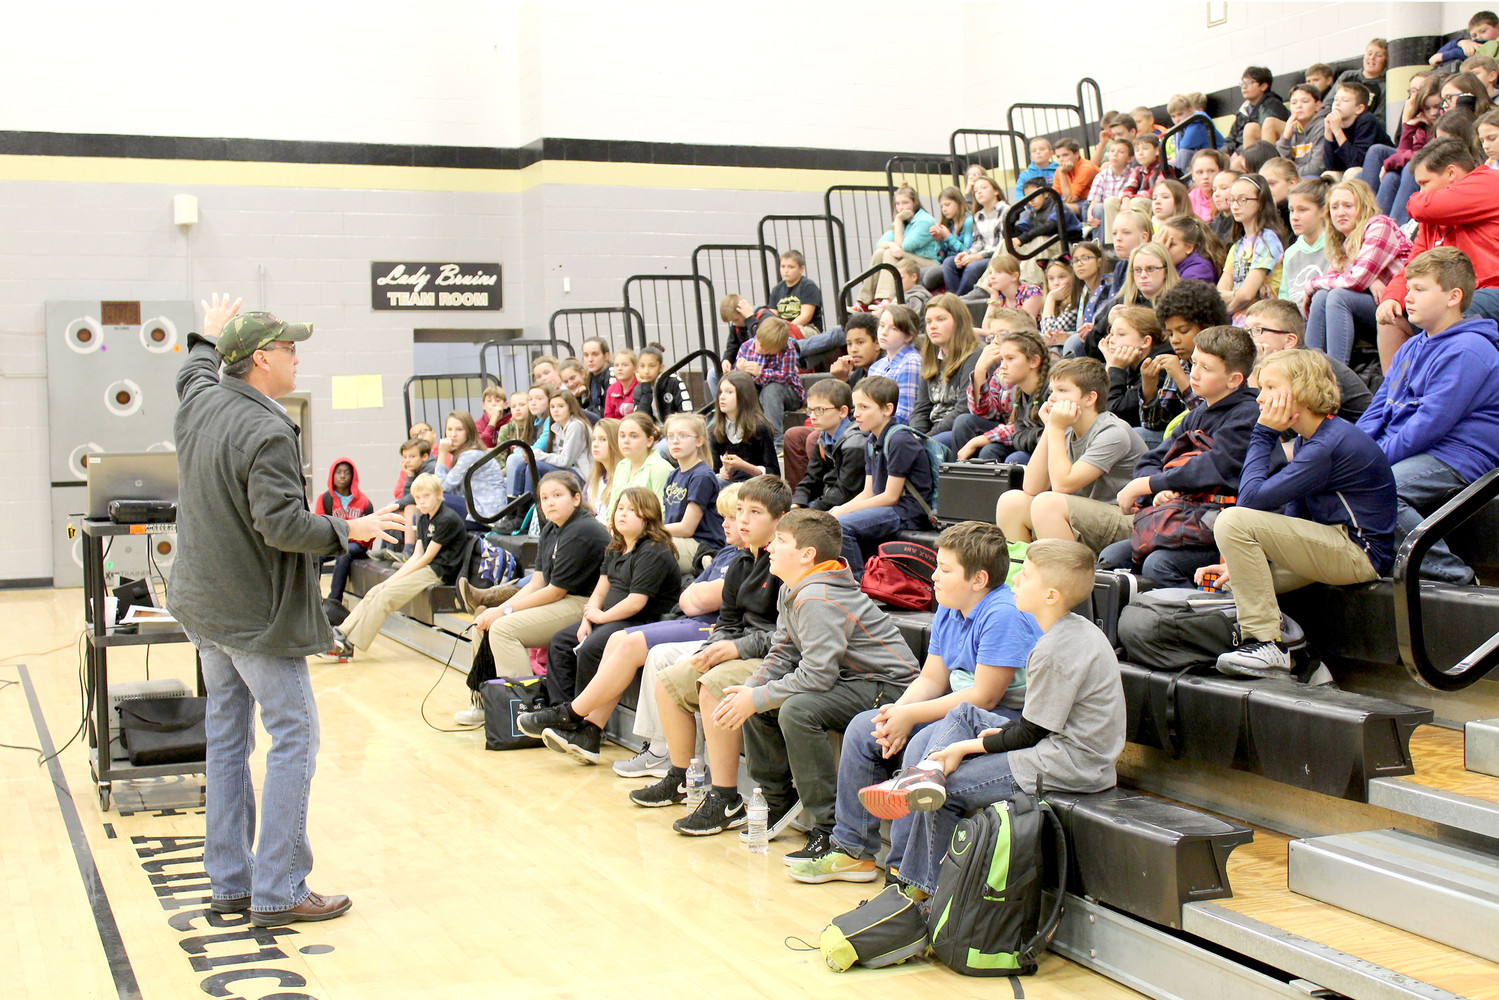 STUDENTS at Lake Forest Middle School listen Scott Elam, board chairman for The Bridge, as he gives shares a presentation about the dangers of drug use.